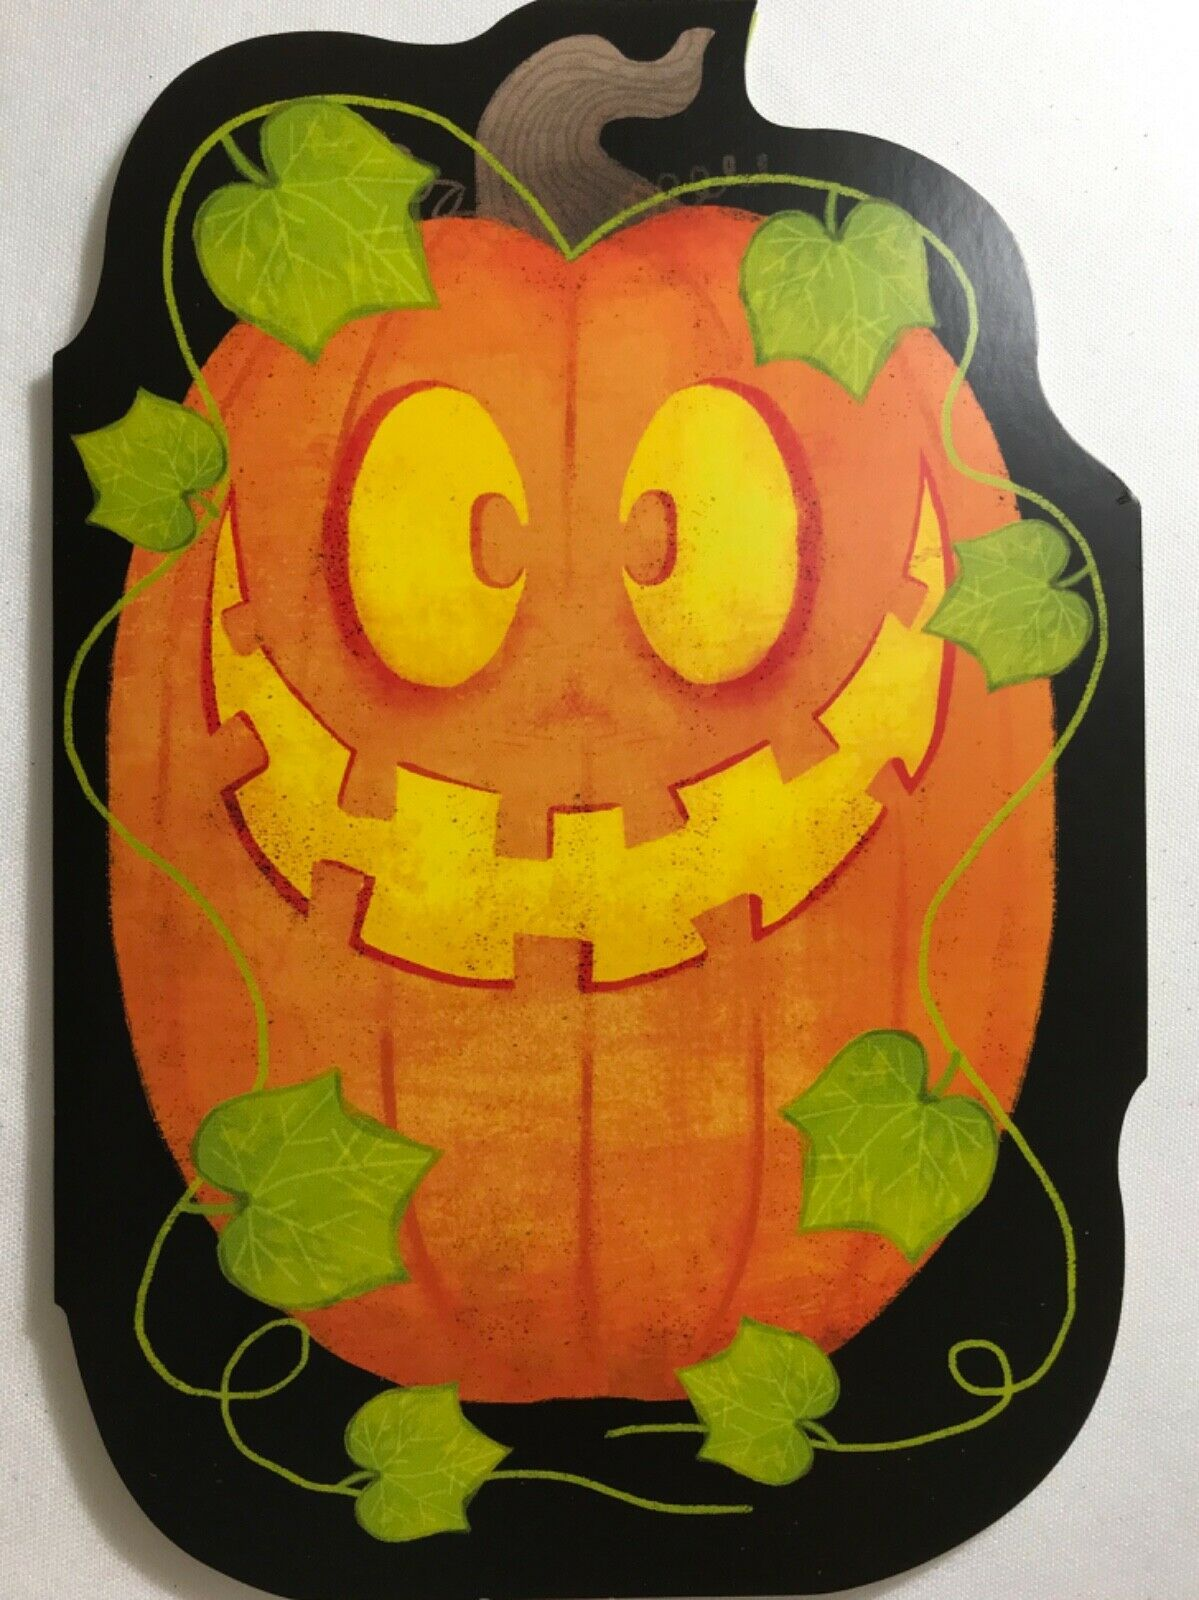 Primary image for Halloween Card w/ a pumpkin w/ press button for sound/song